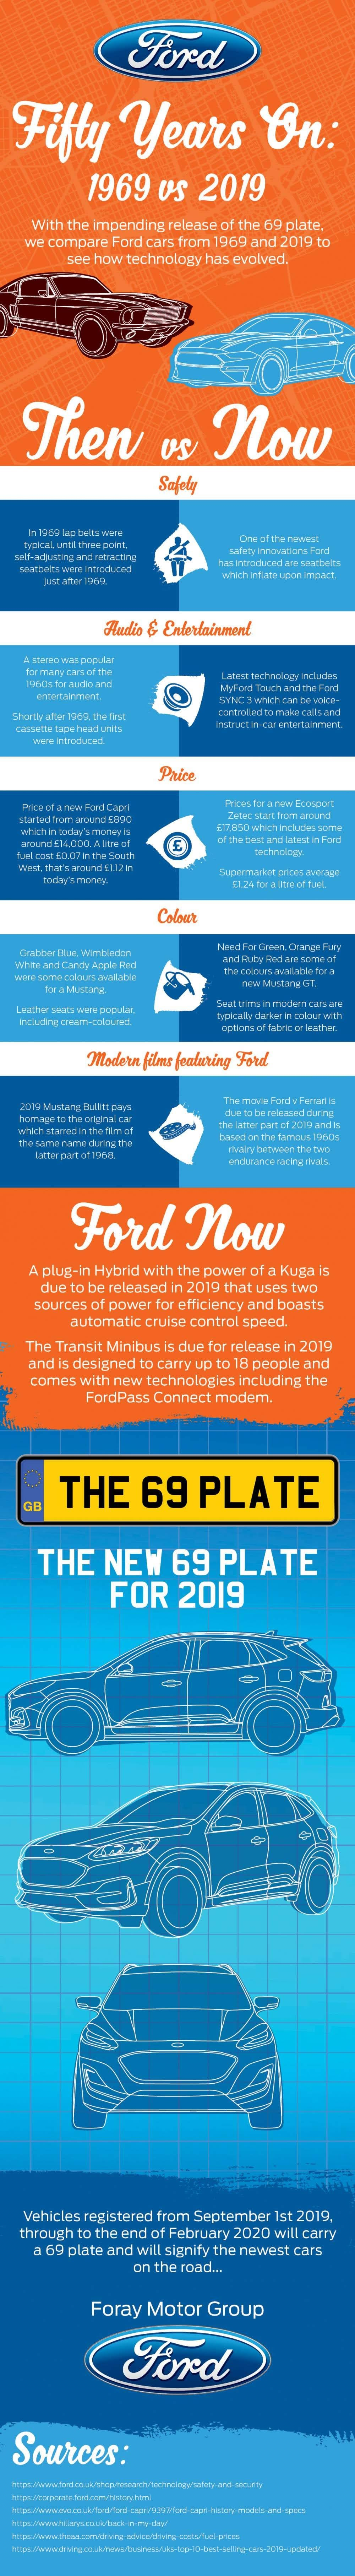 Ford 50 years on: 1969 vs 2019 #infographic